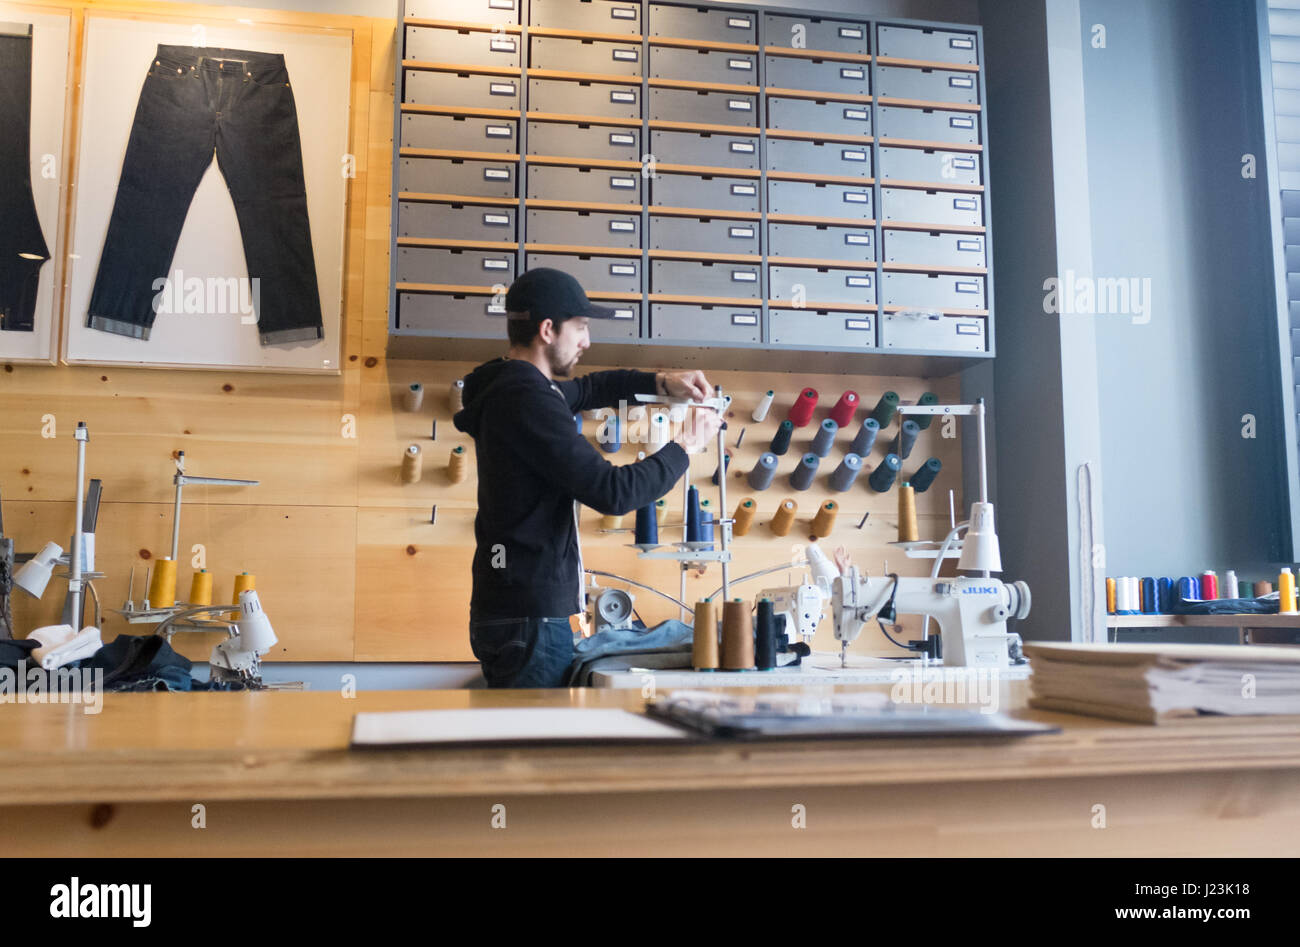 In house alterations in Levis store - Stock Image